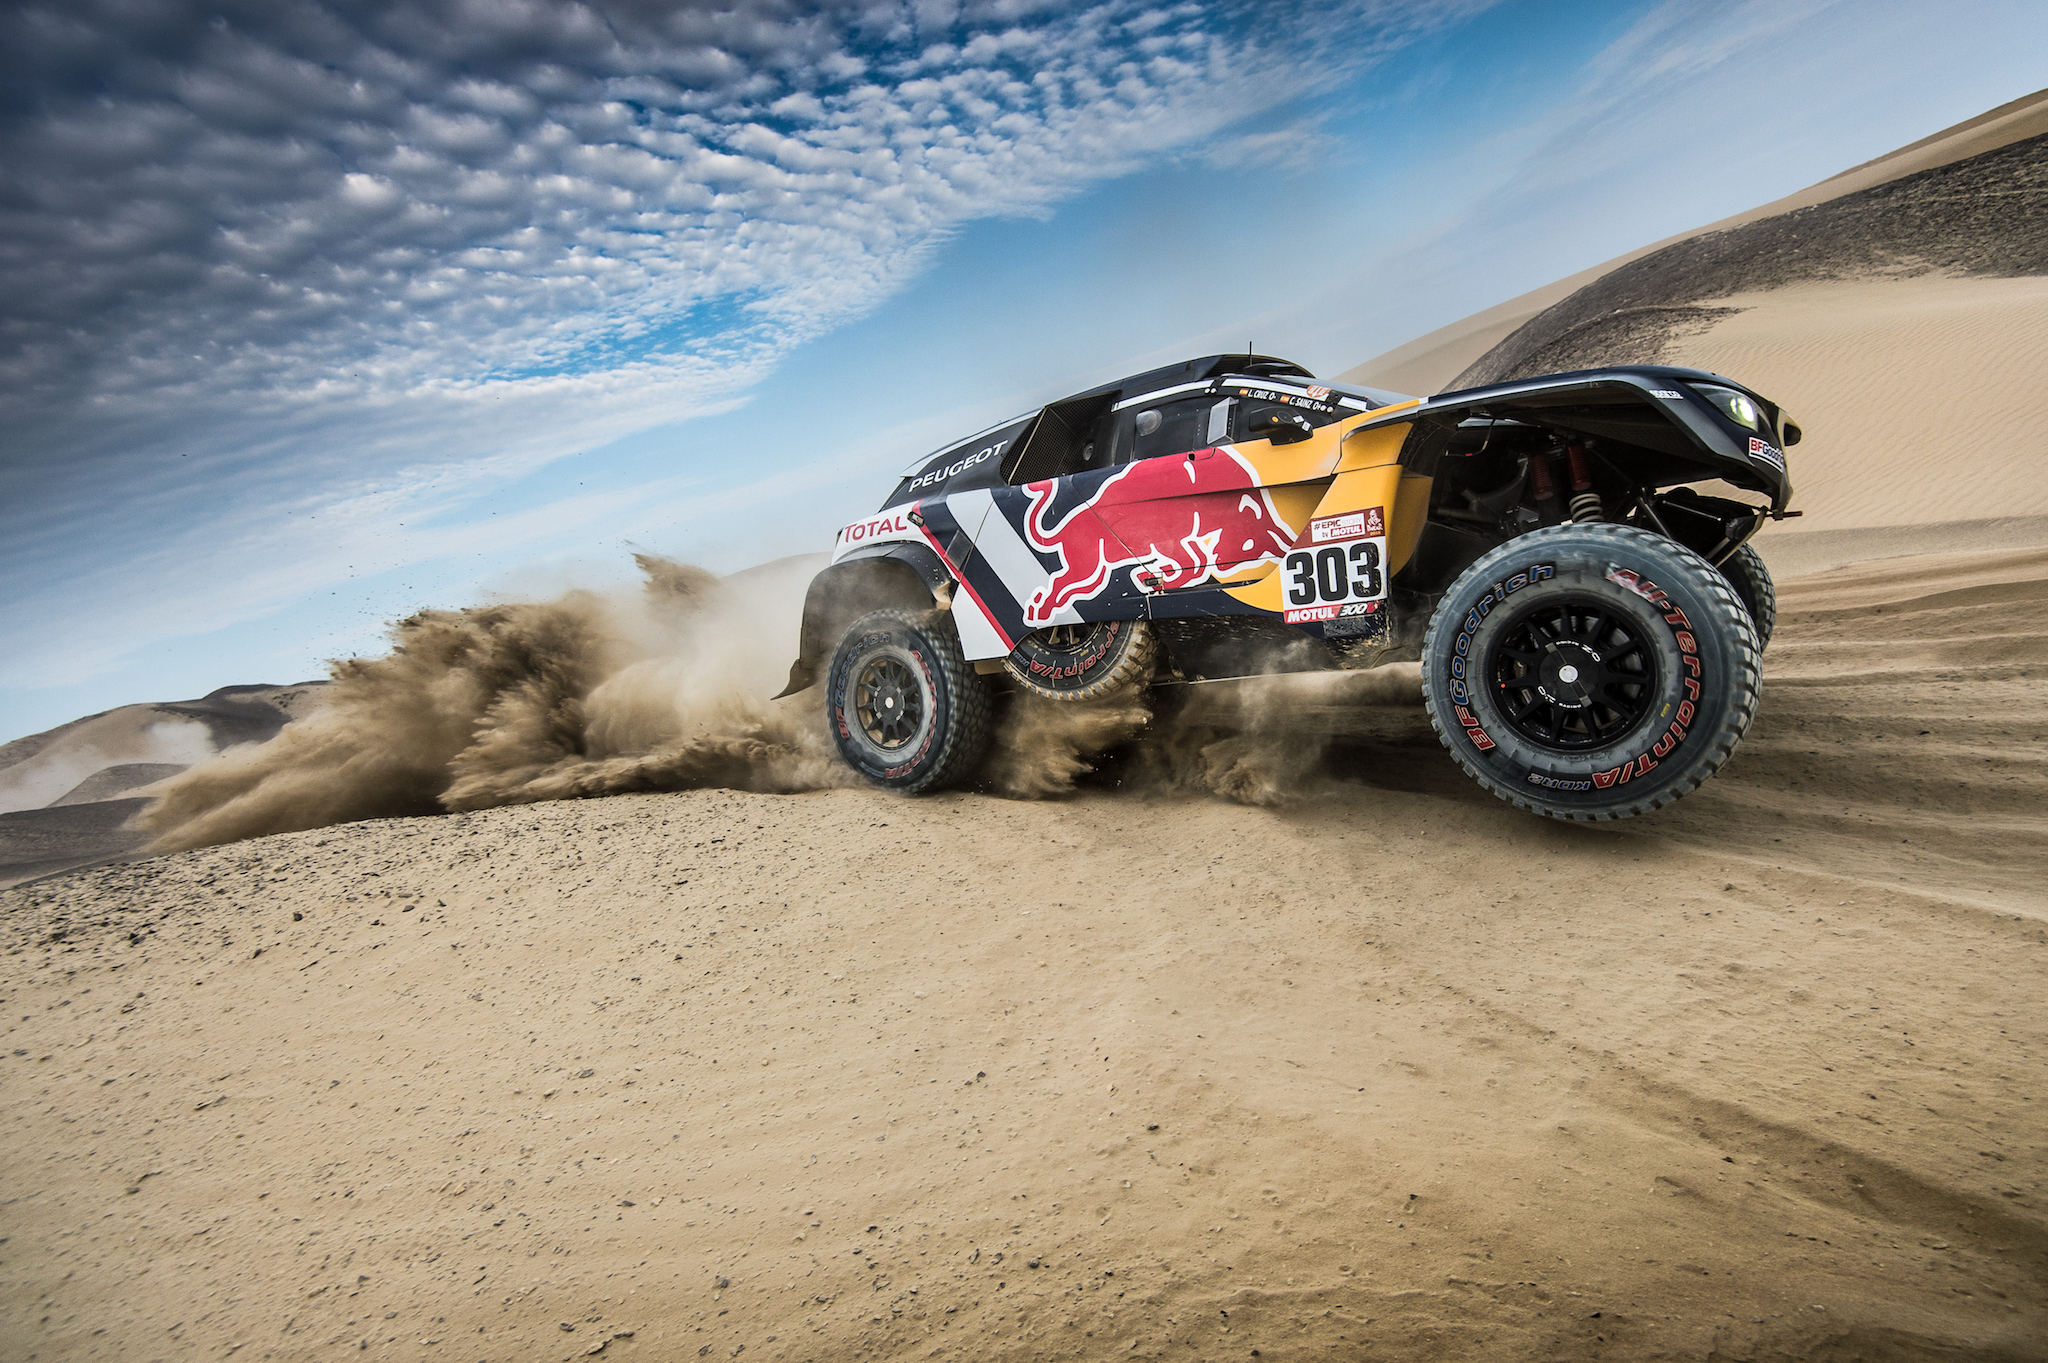 peugeot en dakar 2018 hd 2048x1363 imagenes wallpapers gratis vehiculos autos fondos de. Black Bedroom Furniture Sets. Home Design Ideas